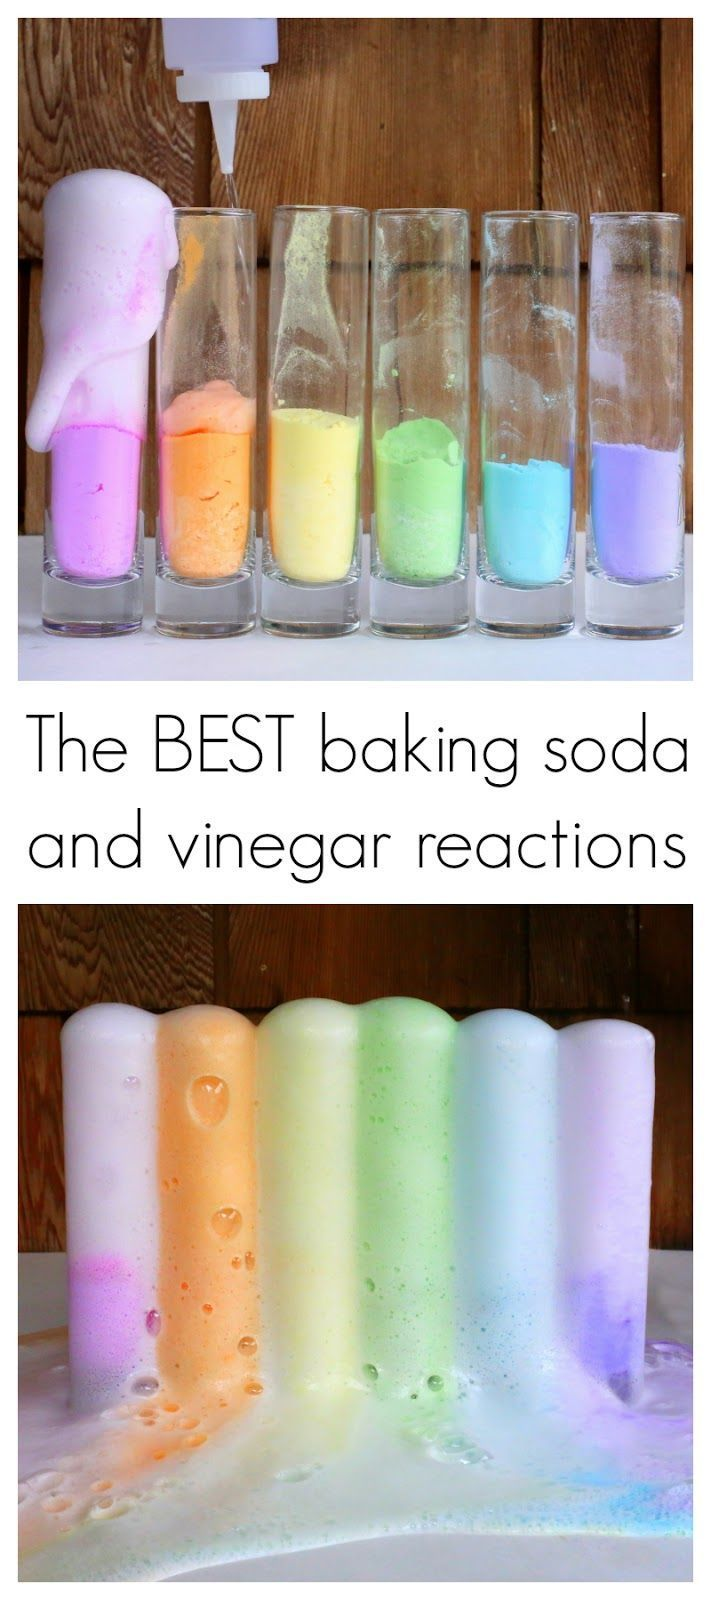 Come learn an easy trick that will get you the most dramatic, puffy, foamy baking soda and vinegar eruptions and learn the science behind it! From Fun at Home with Kids